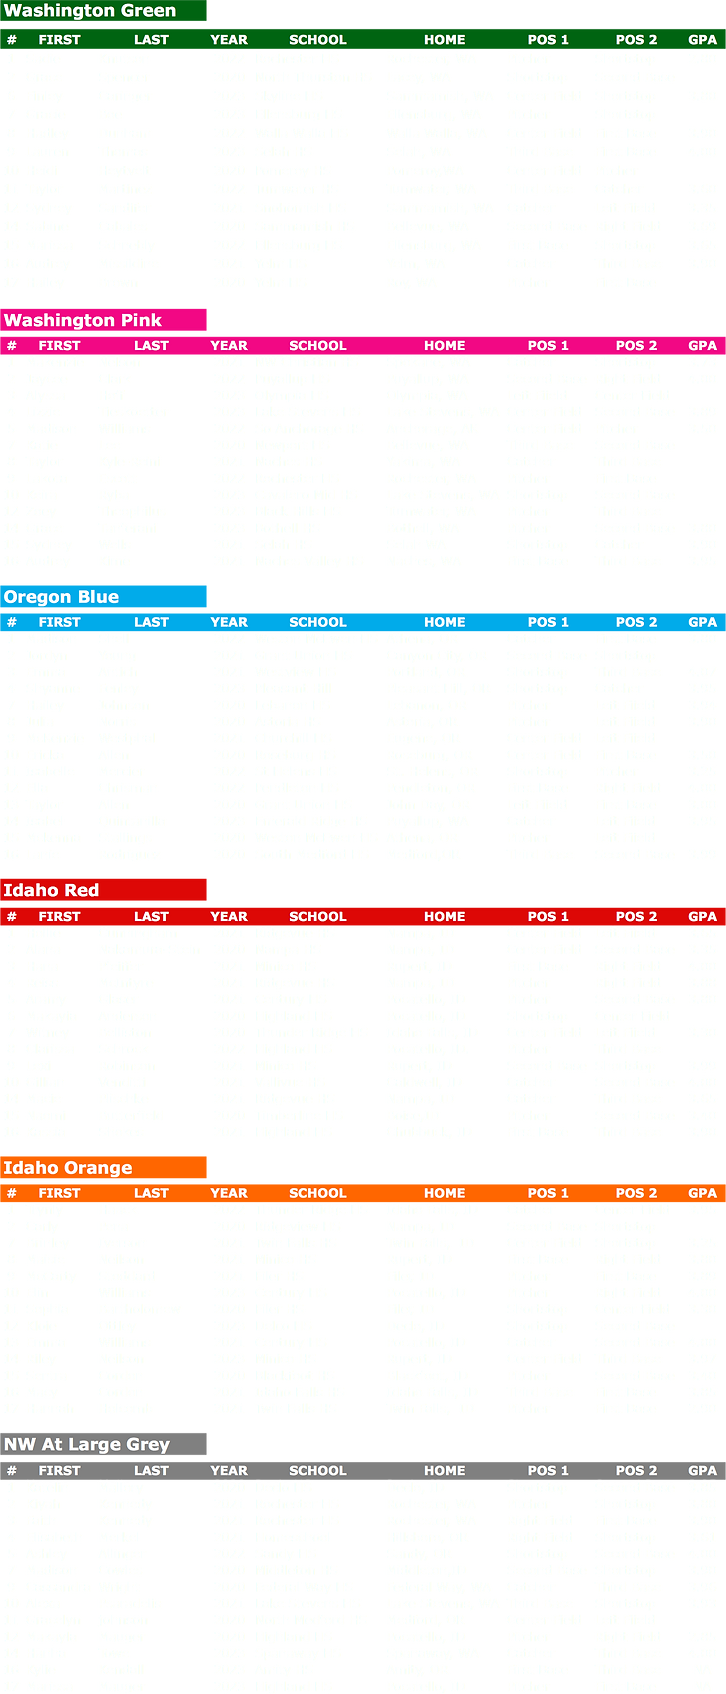 fpnw web rosters 8-4.png